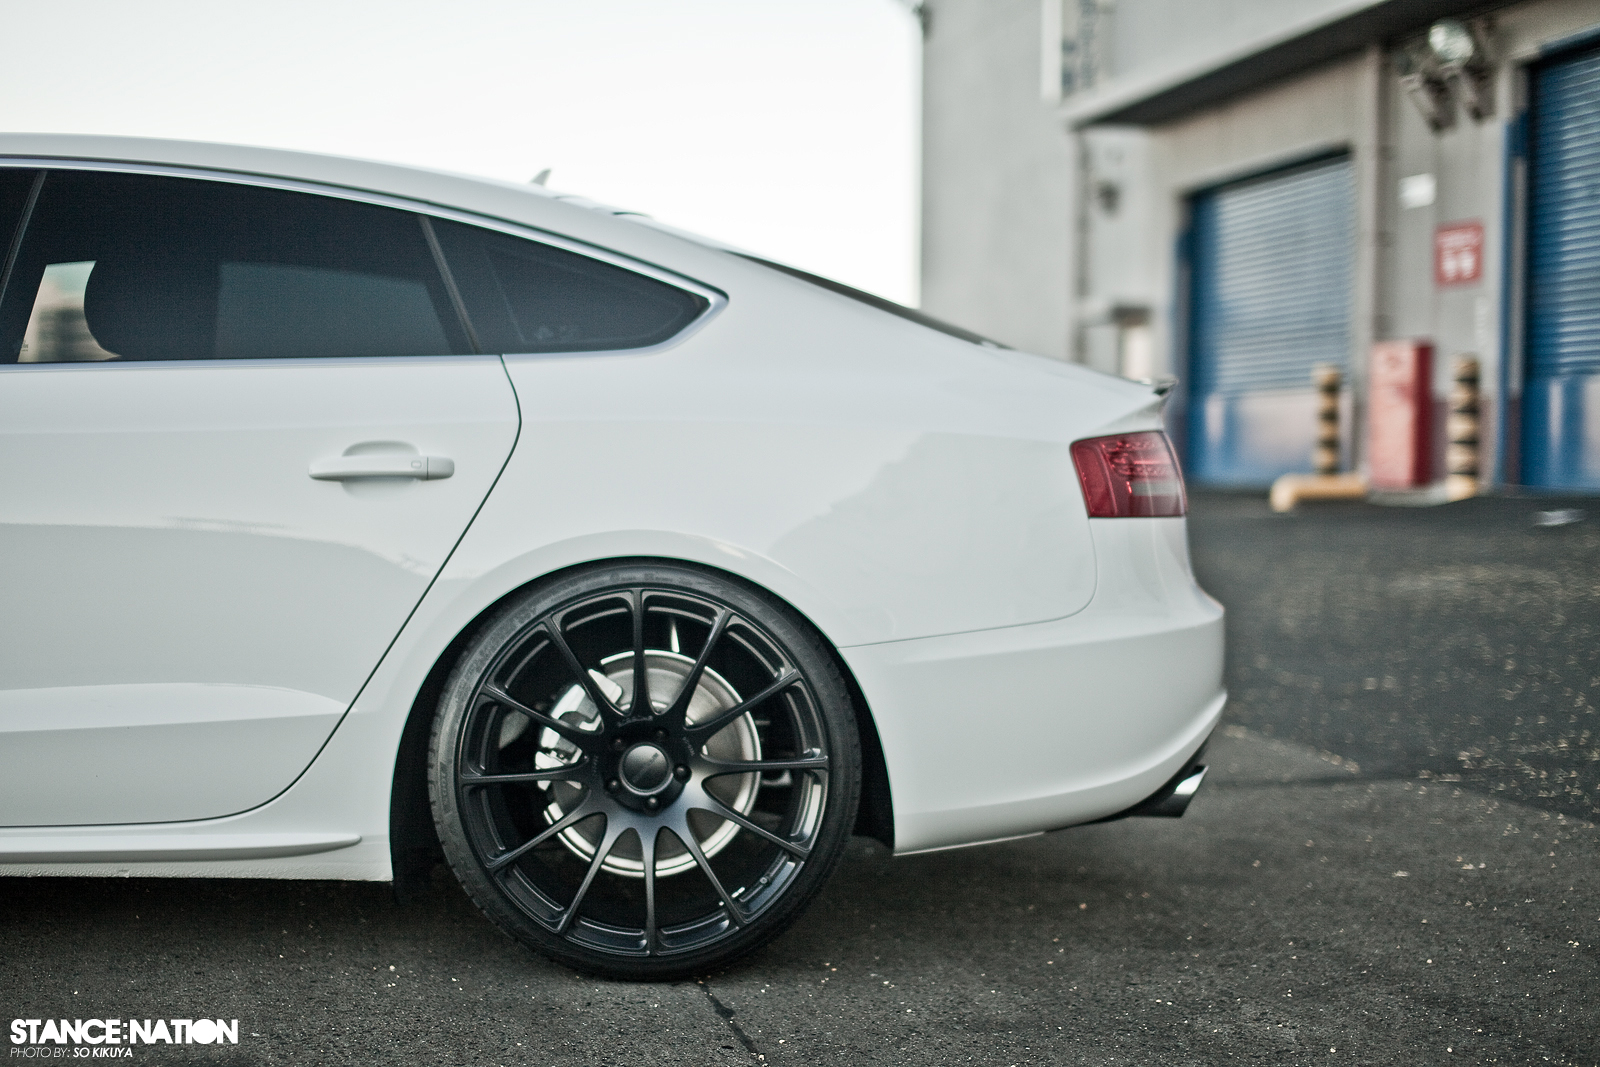 S5 Sportback Spoiler Who Wants One Any Other